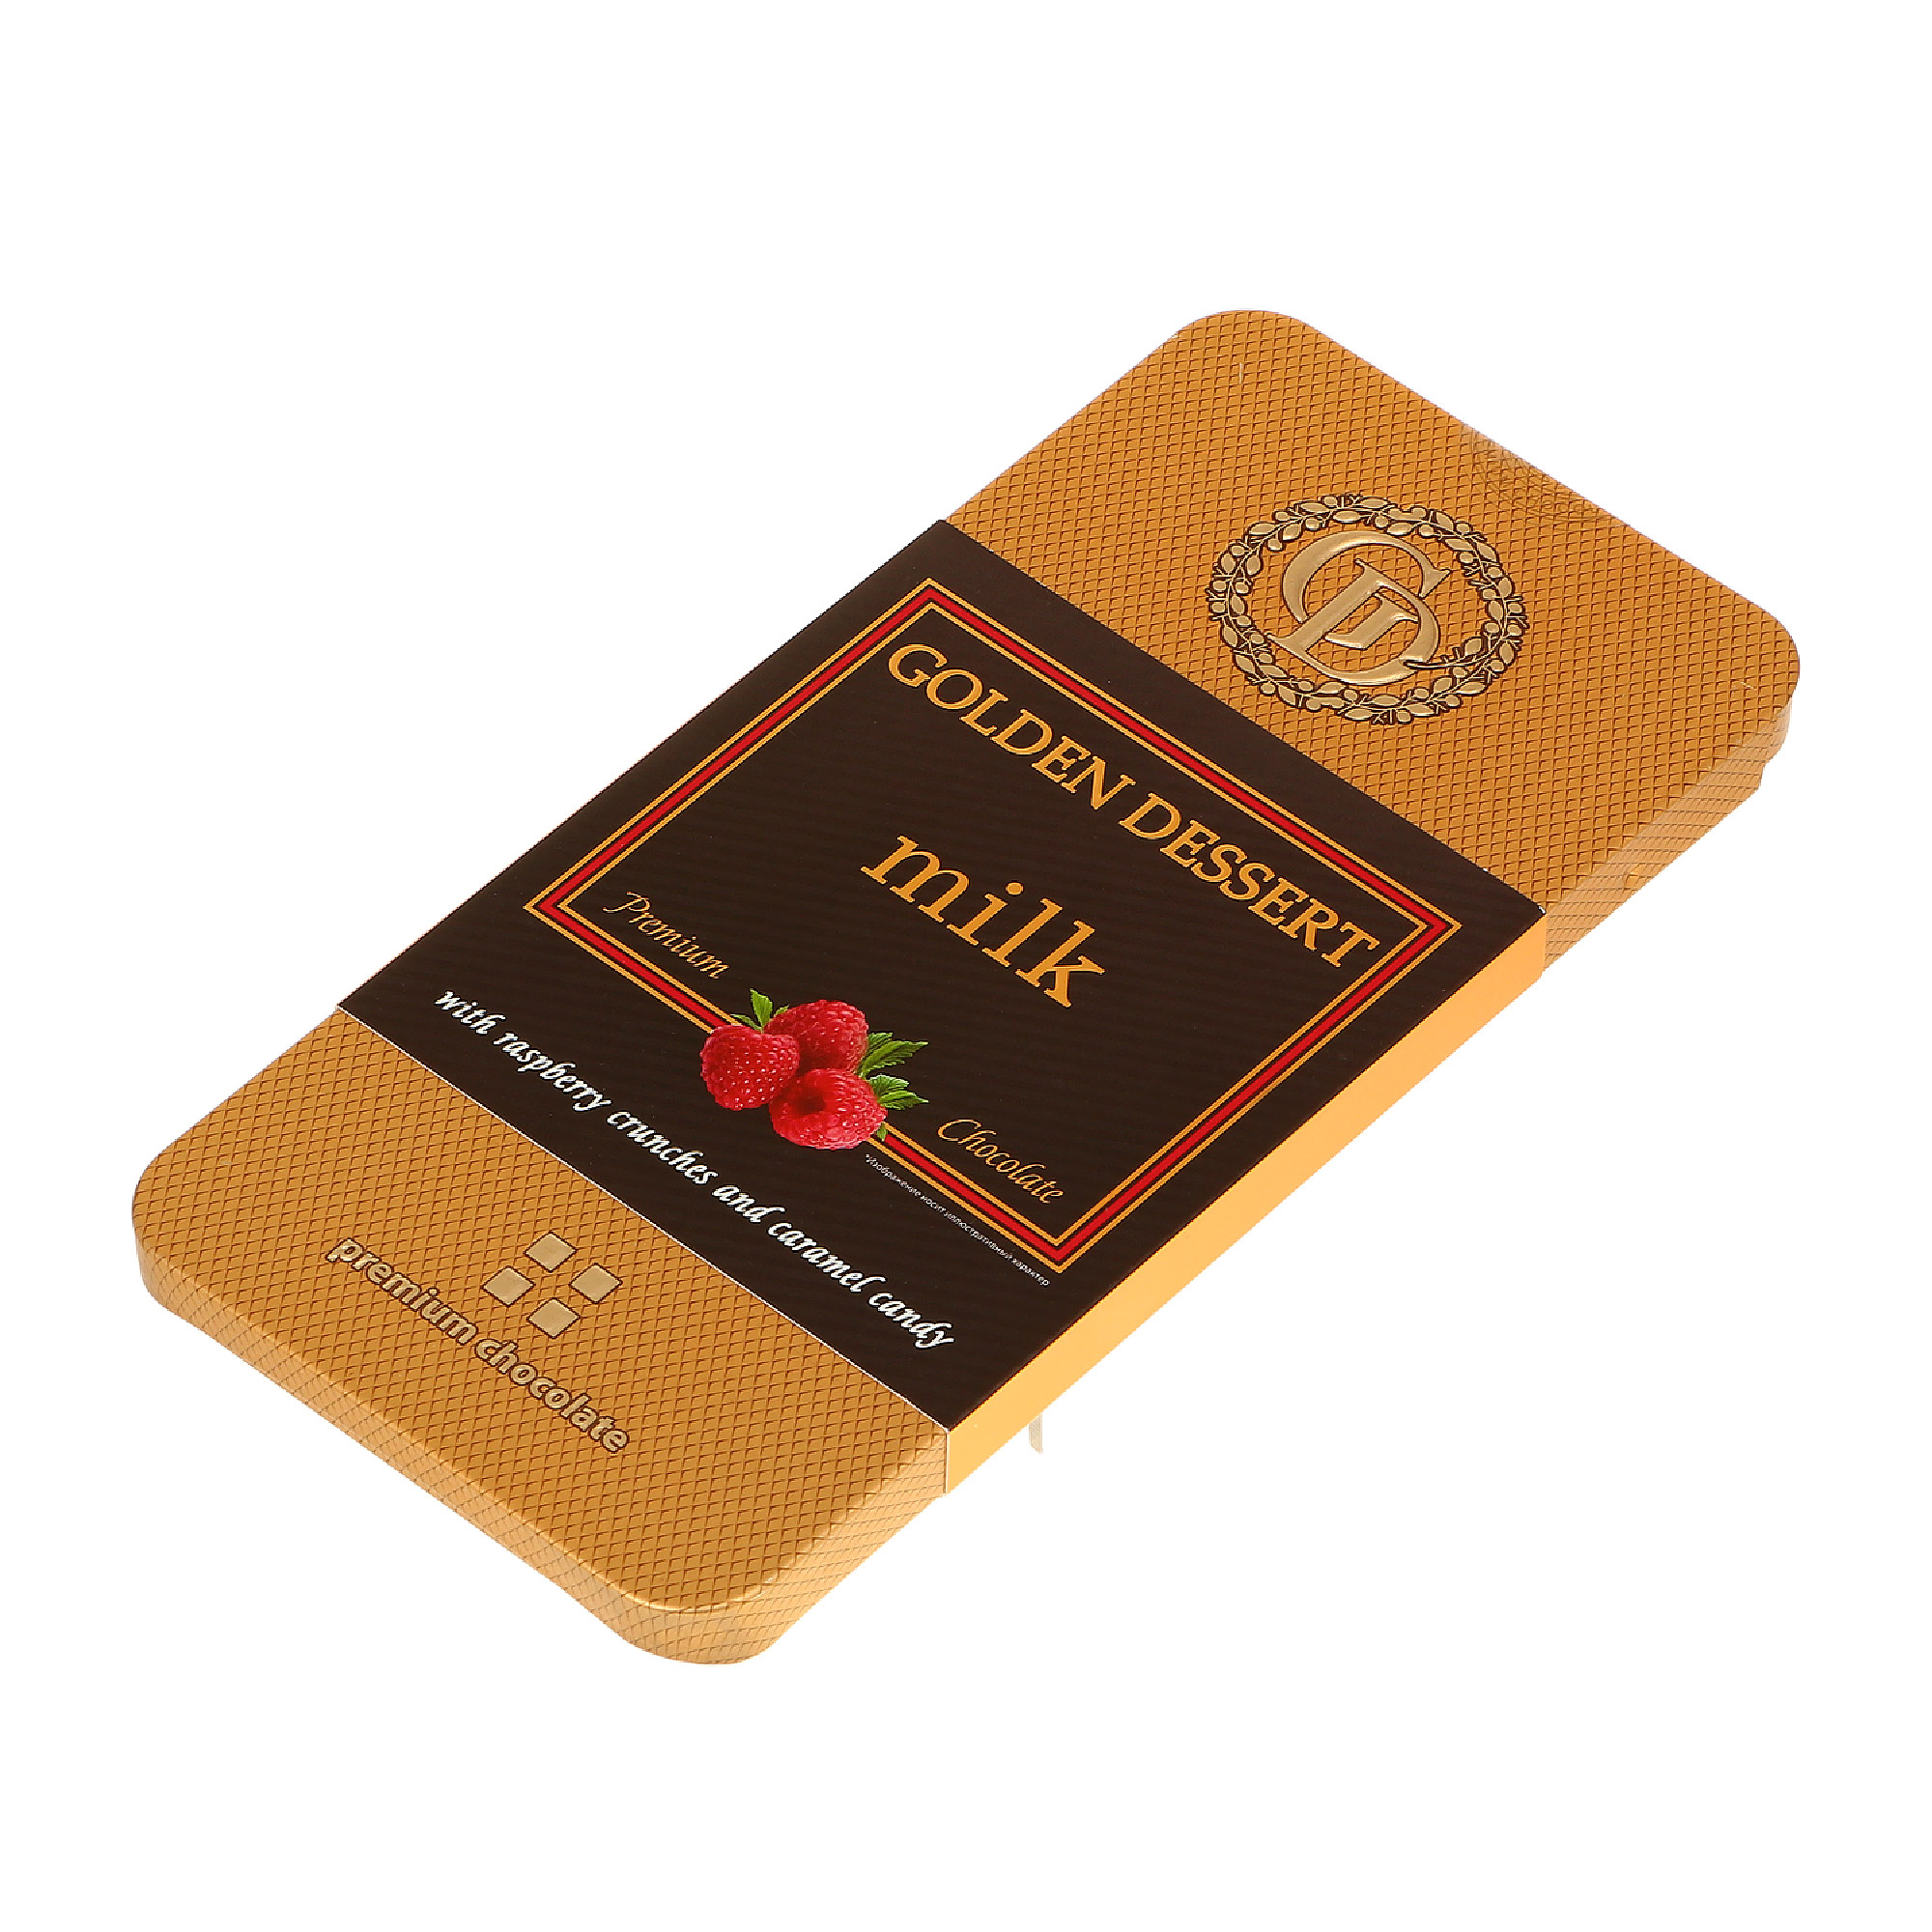 шоколад горький golden dessert 72% 100 г Шоколад молочный GOLDEN DESSERT milk с малиной 100 г